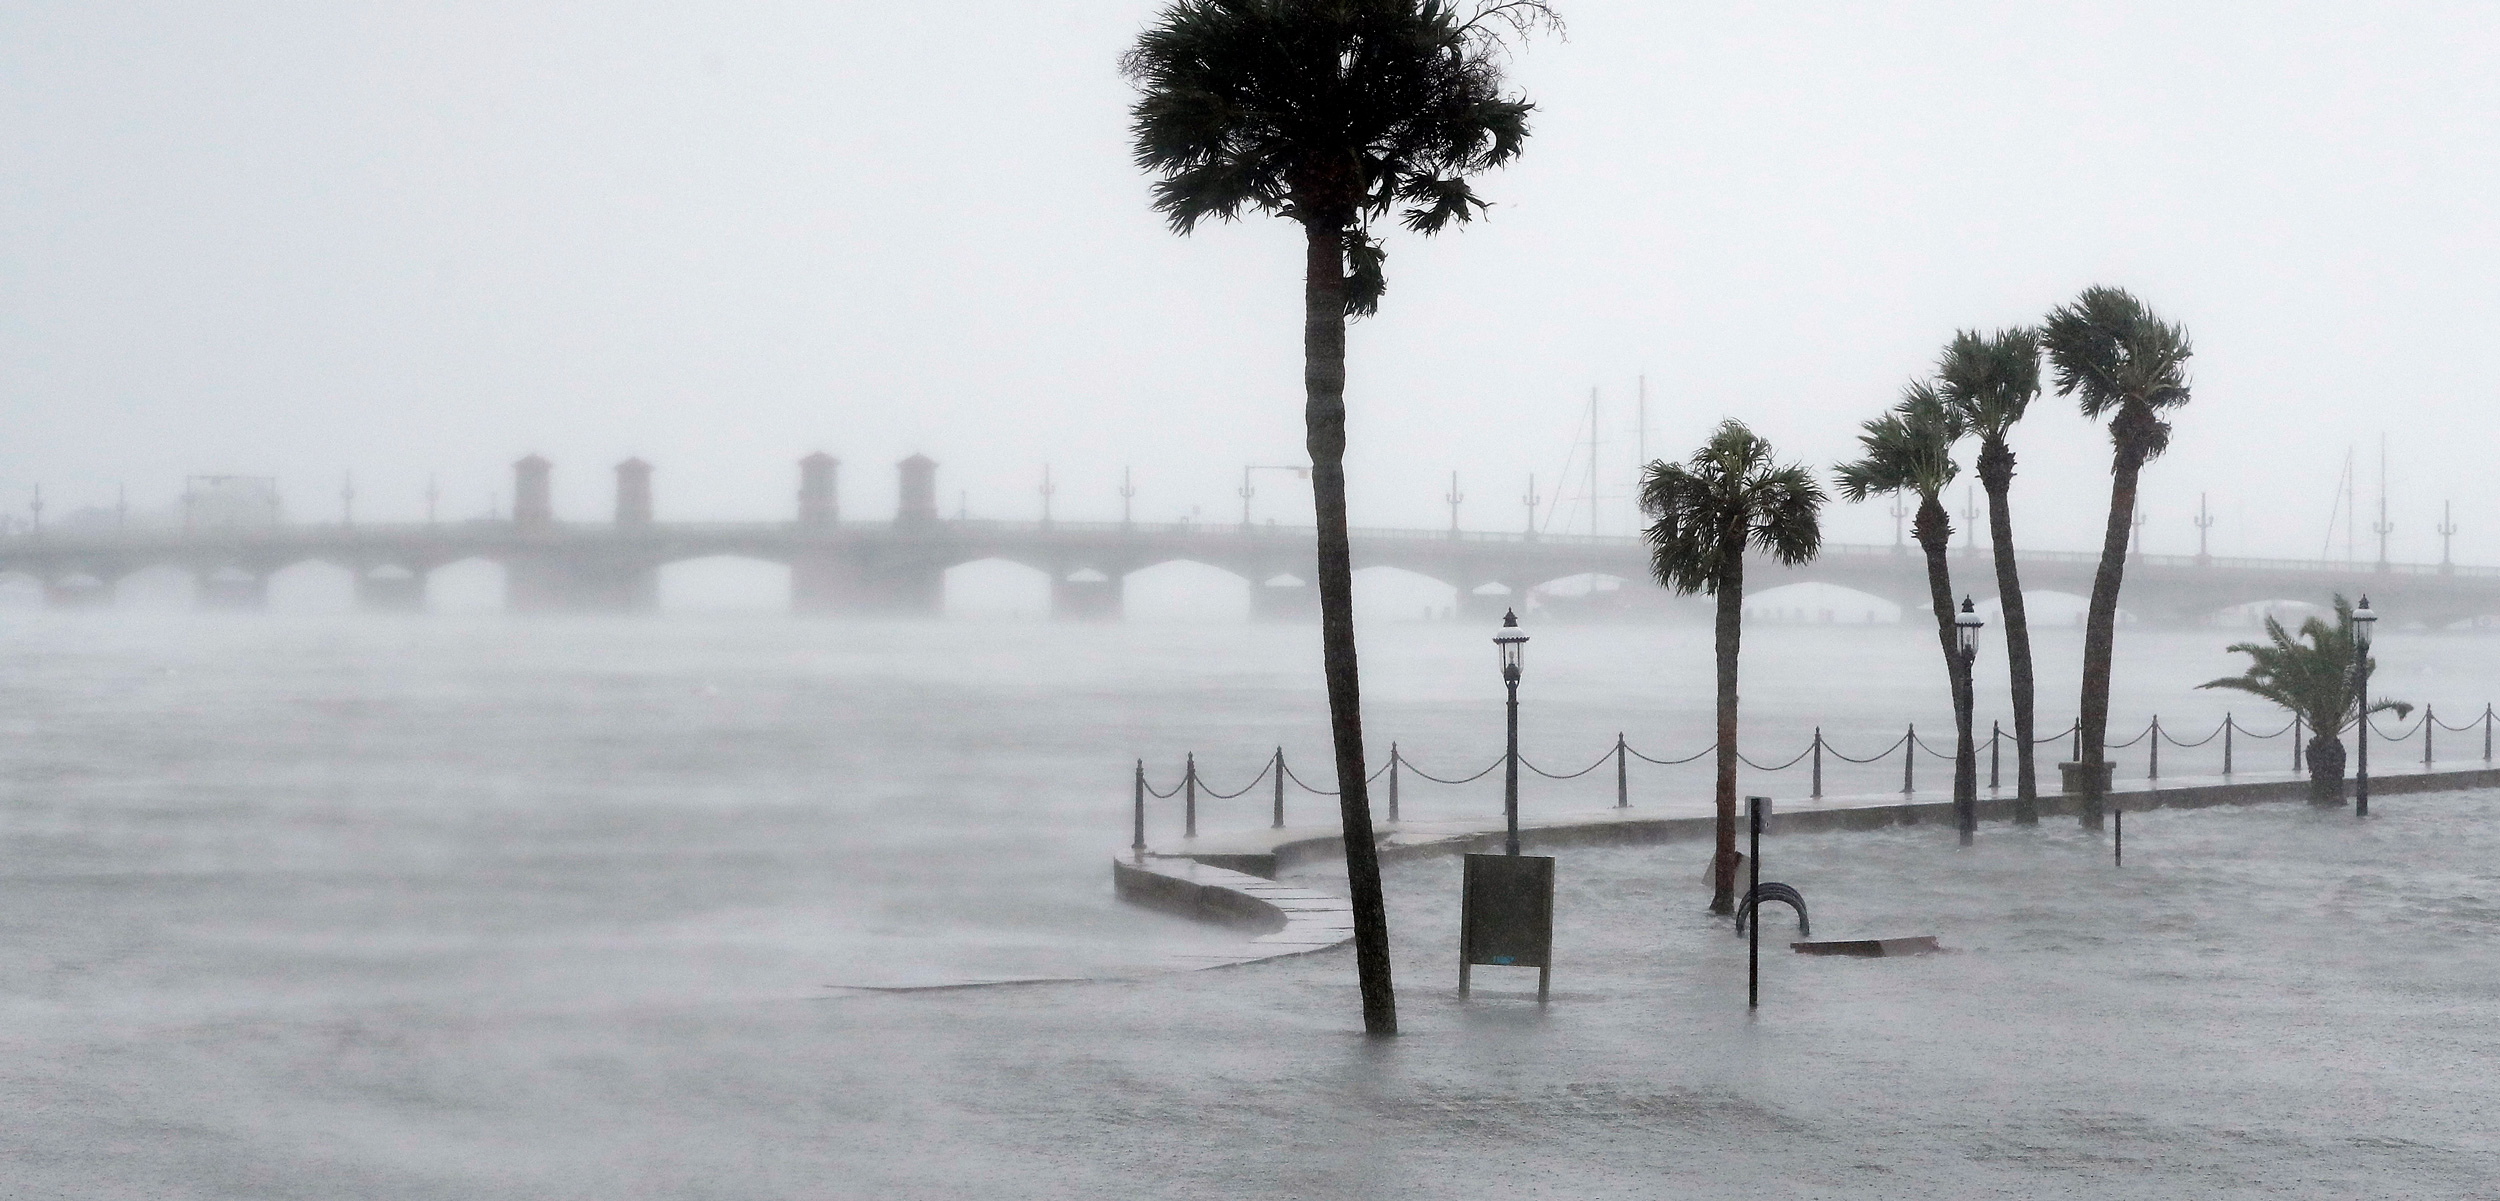 St. Augustine, Florida during Hurricane Matthew